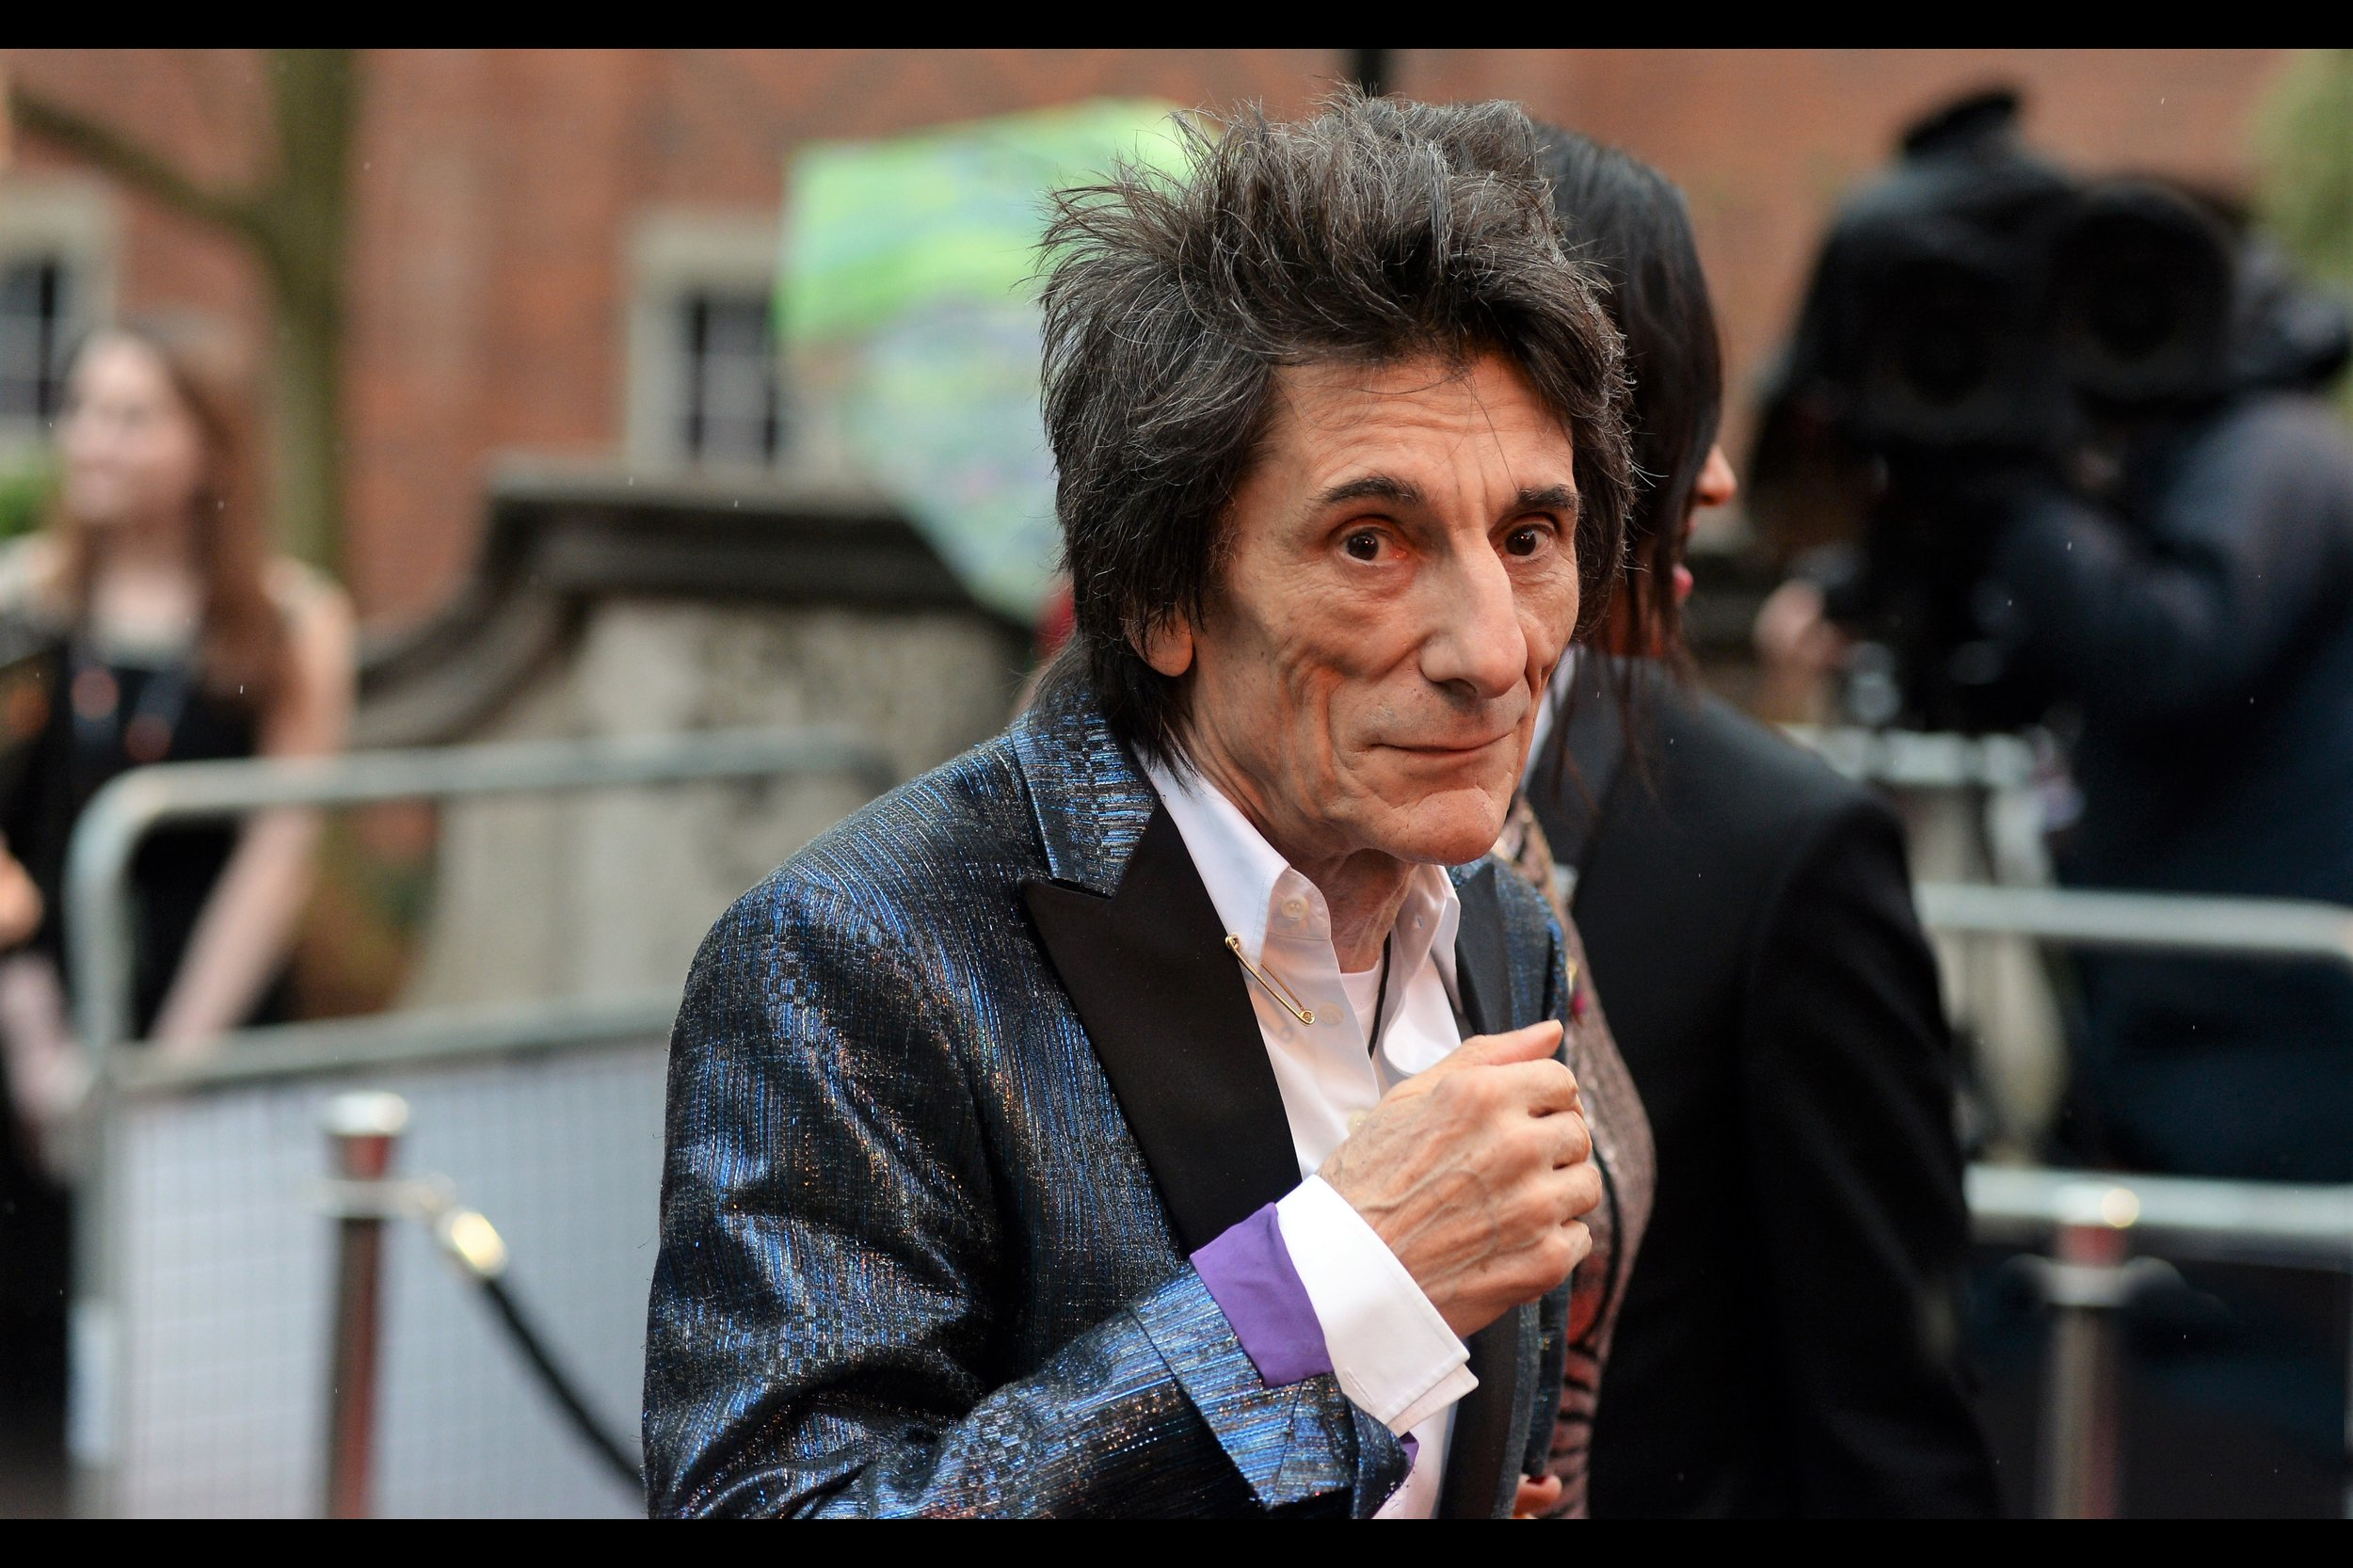 """""""I've been a member of the Rolling Stones for several decades longer than anyone thought we'd survive, so I'm not willing to tempt fate by wearing a """"Time's Up"""" badge. But hurrah for the cause, certainly"""""""